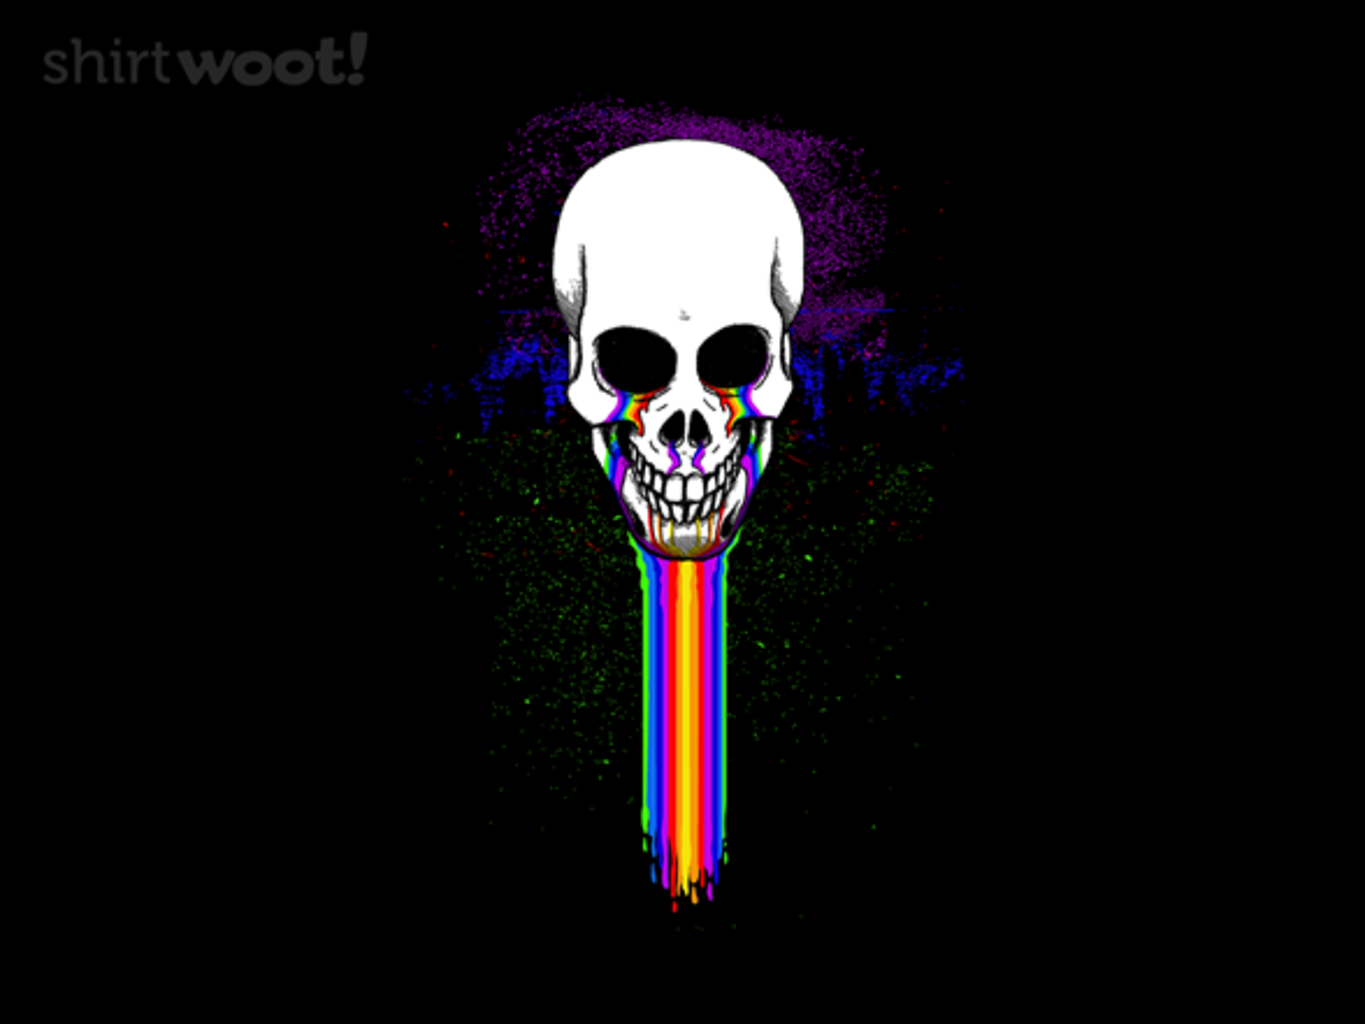 Woot!: Full Color Bleed - $15.00 + Free shipping